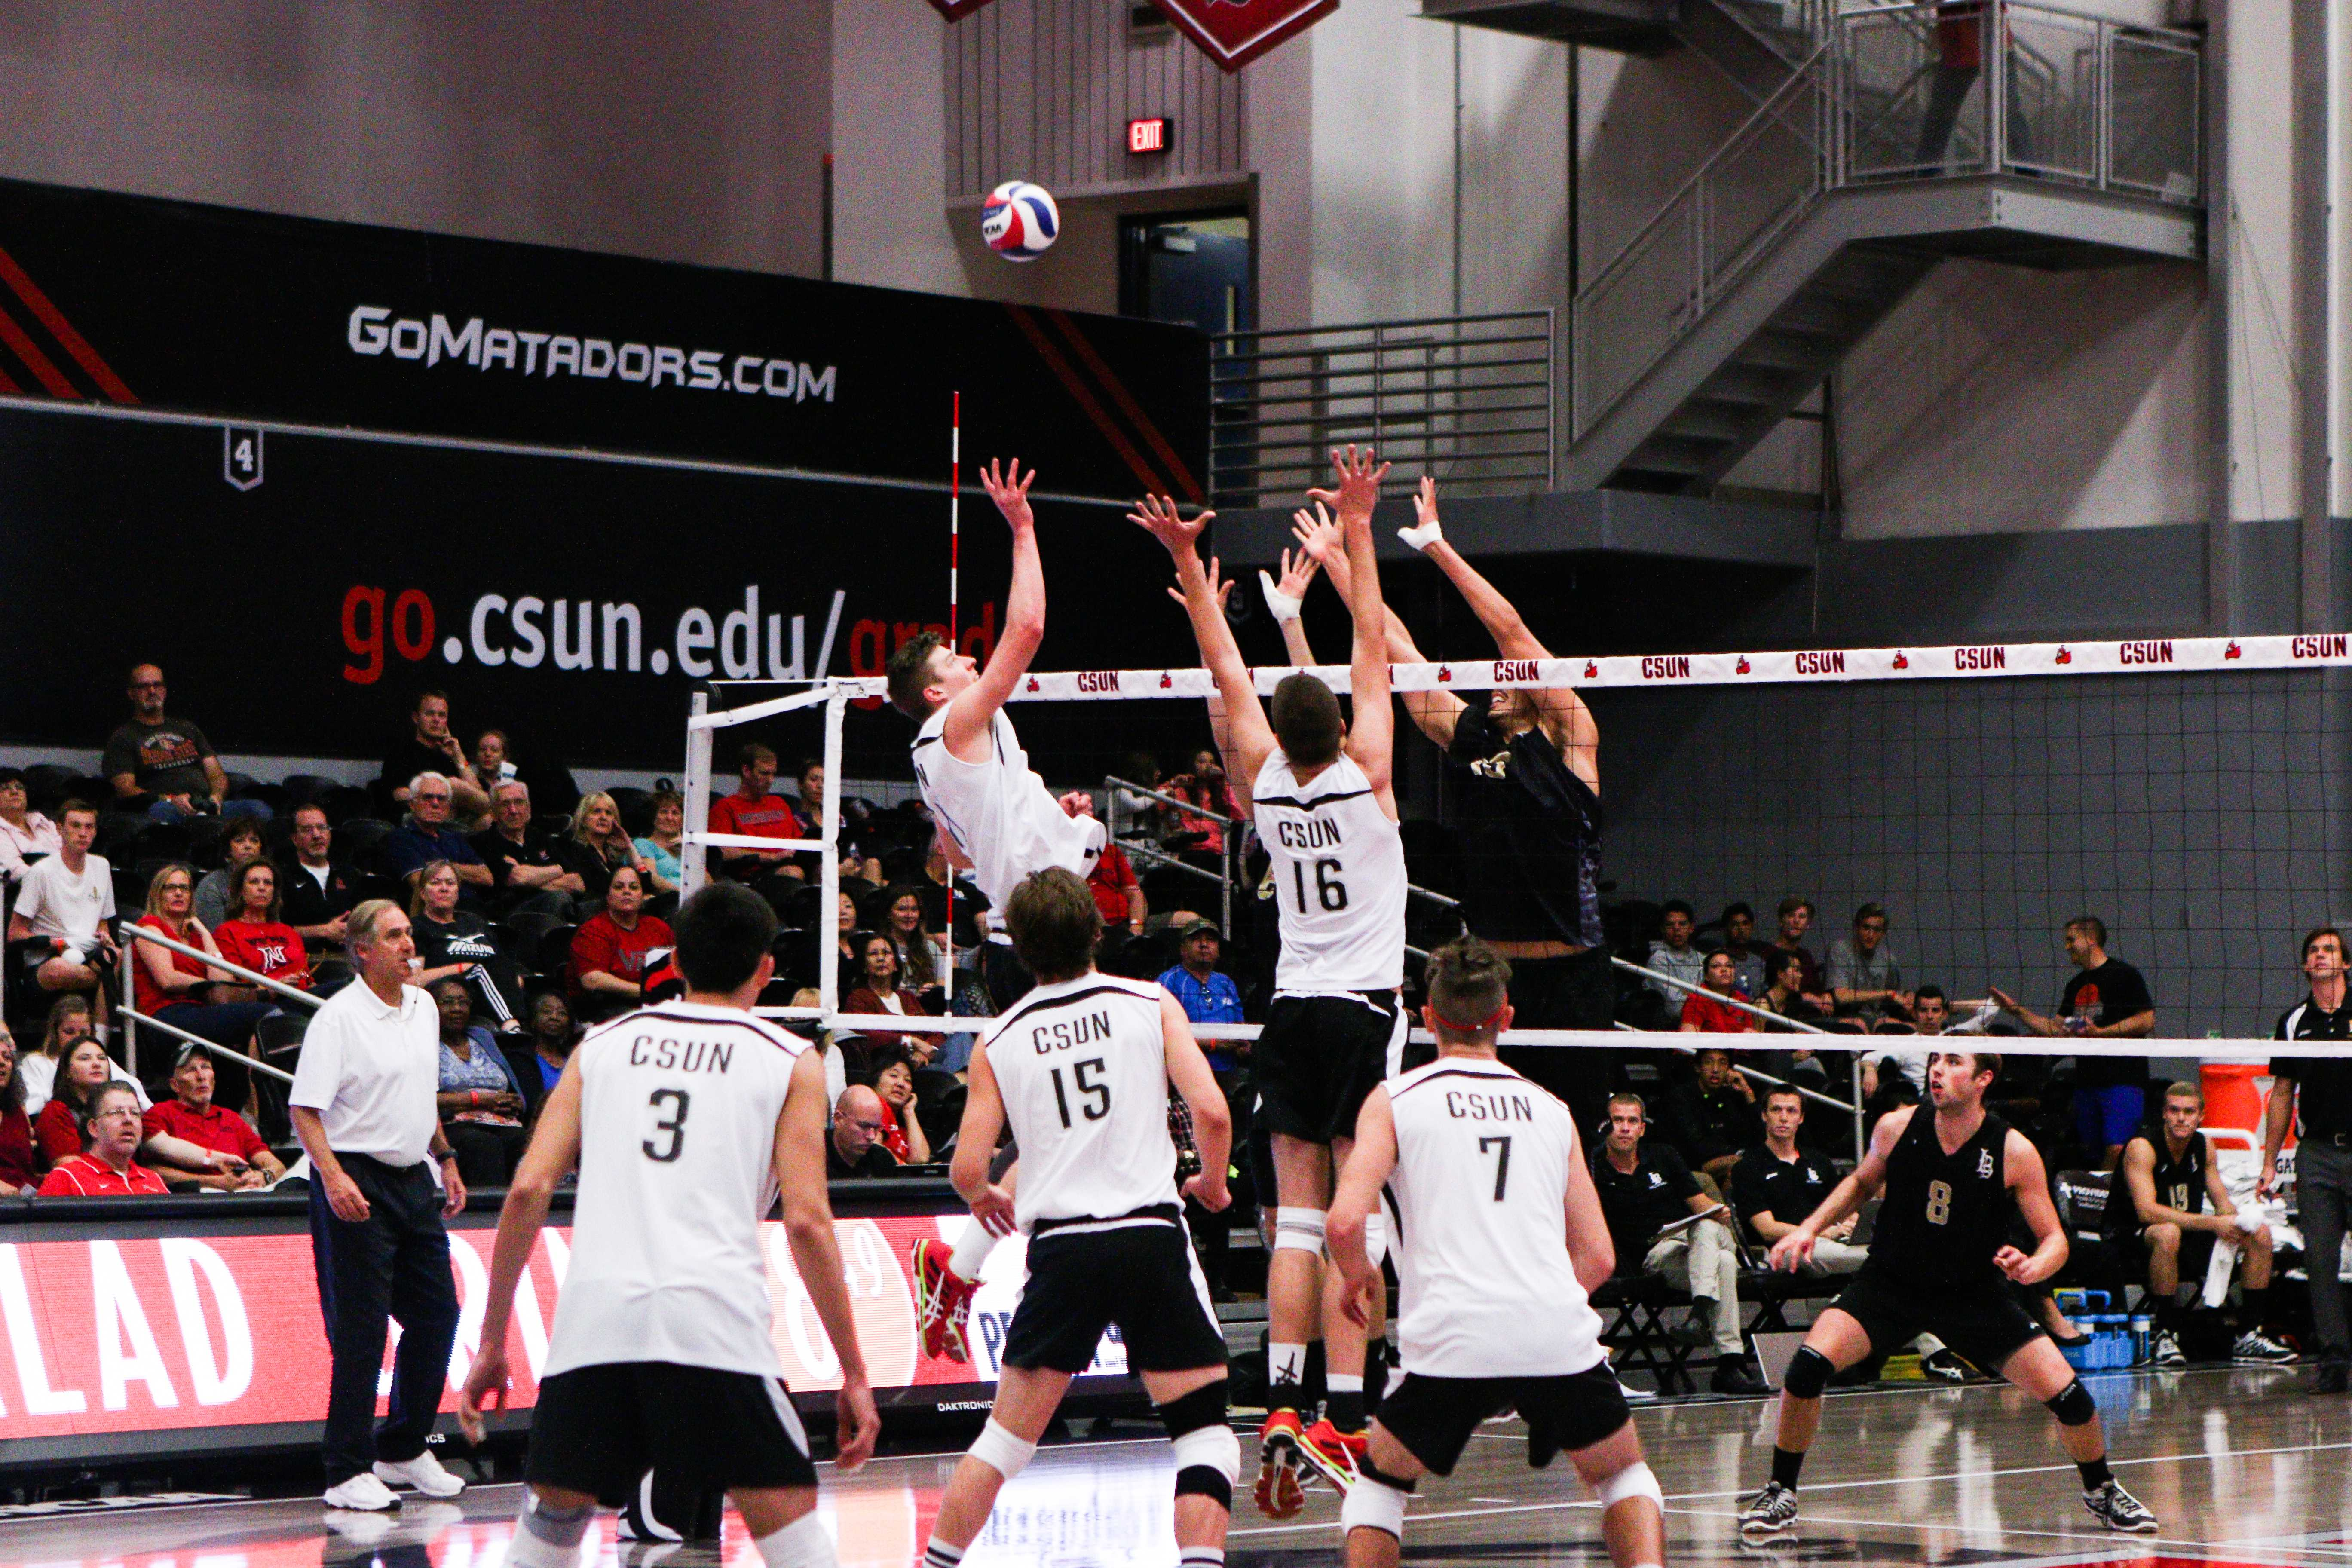 Men's Volleyball: Long Beach State stretches CSUN losing streak